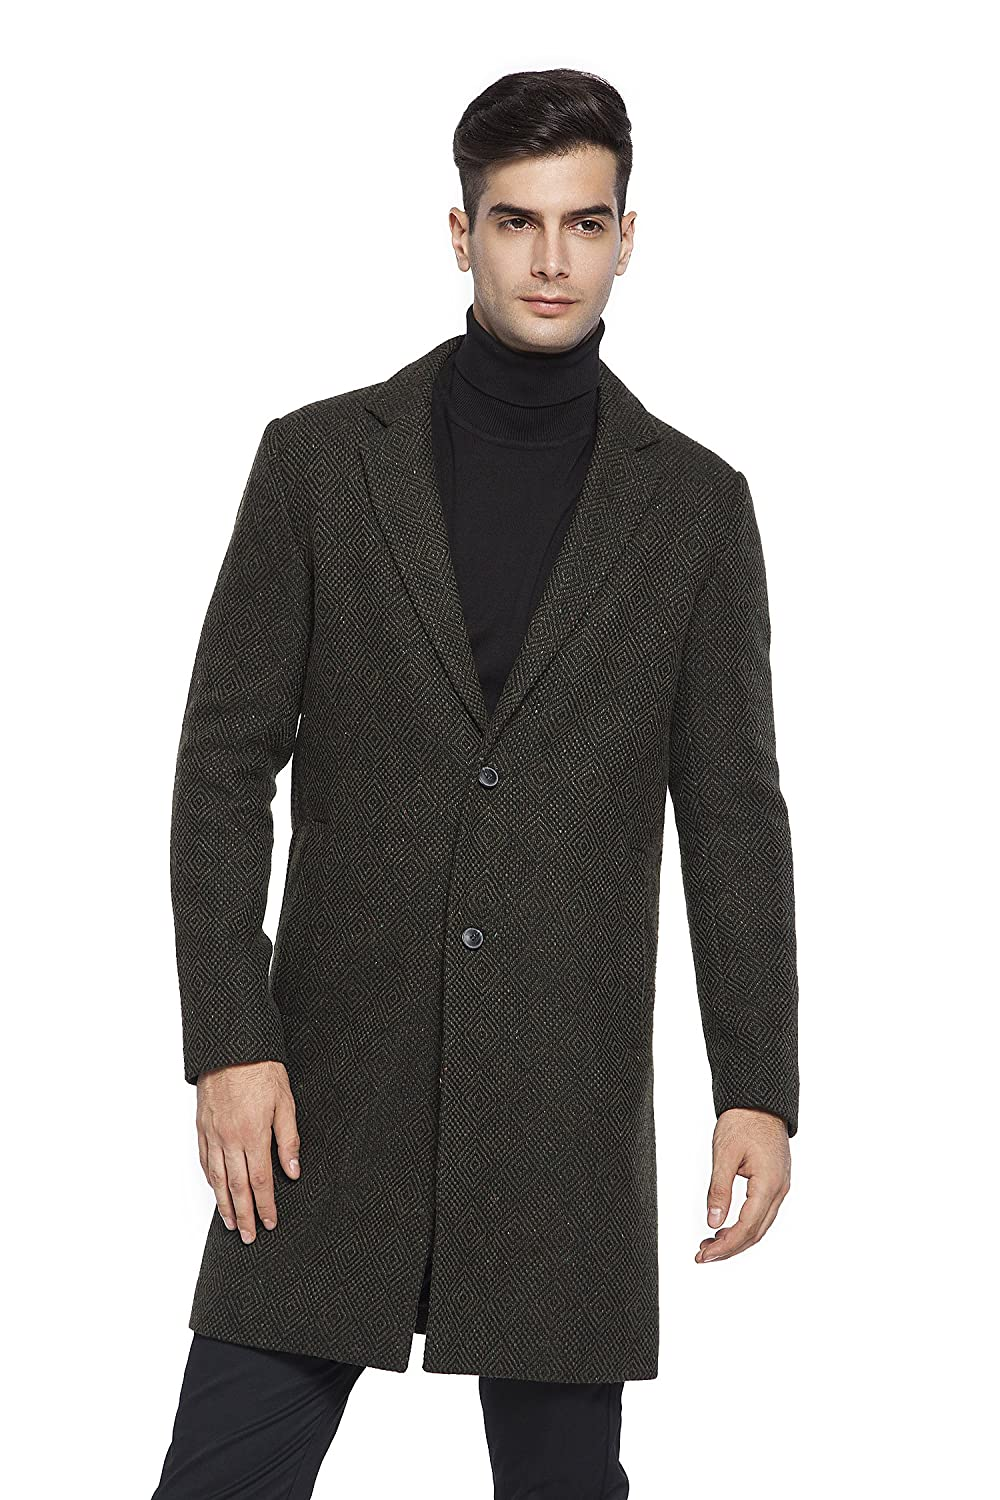 RLM Men's Single Breasted Woolen Trench Coat Overcoat Long Jacket RL MAKING